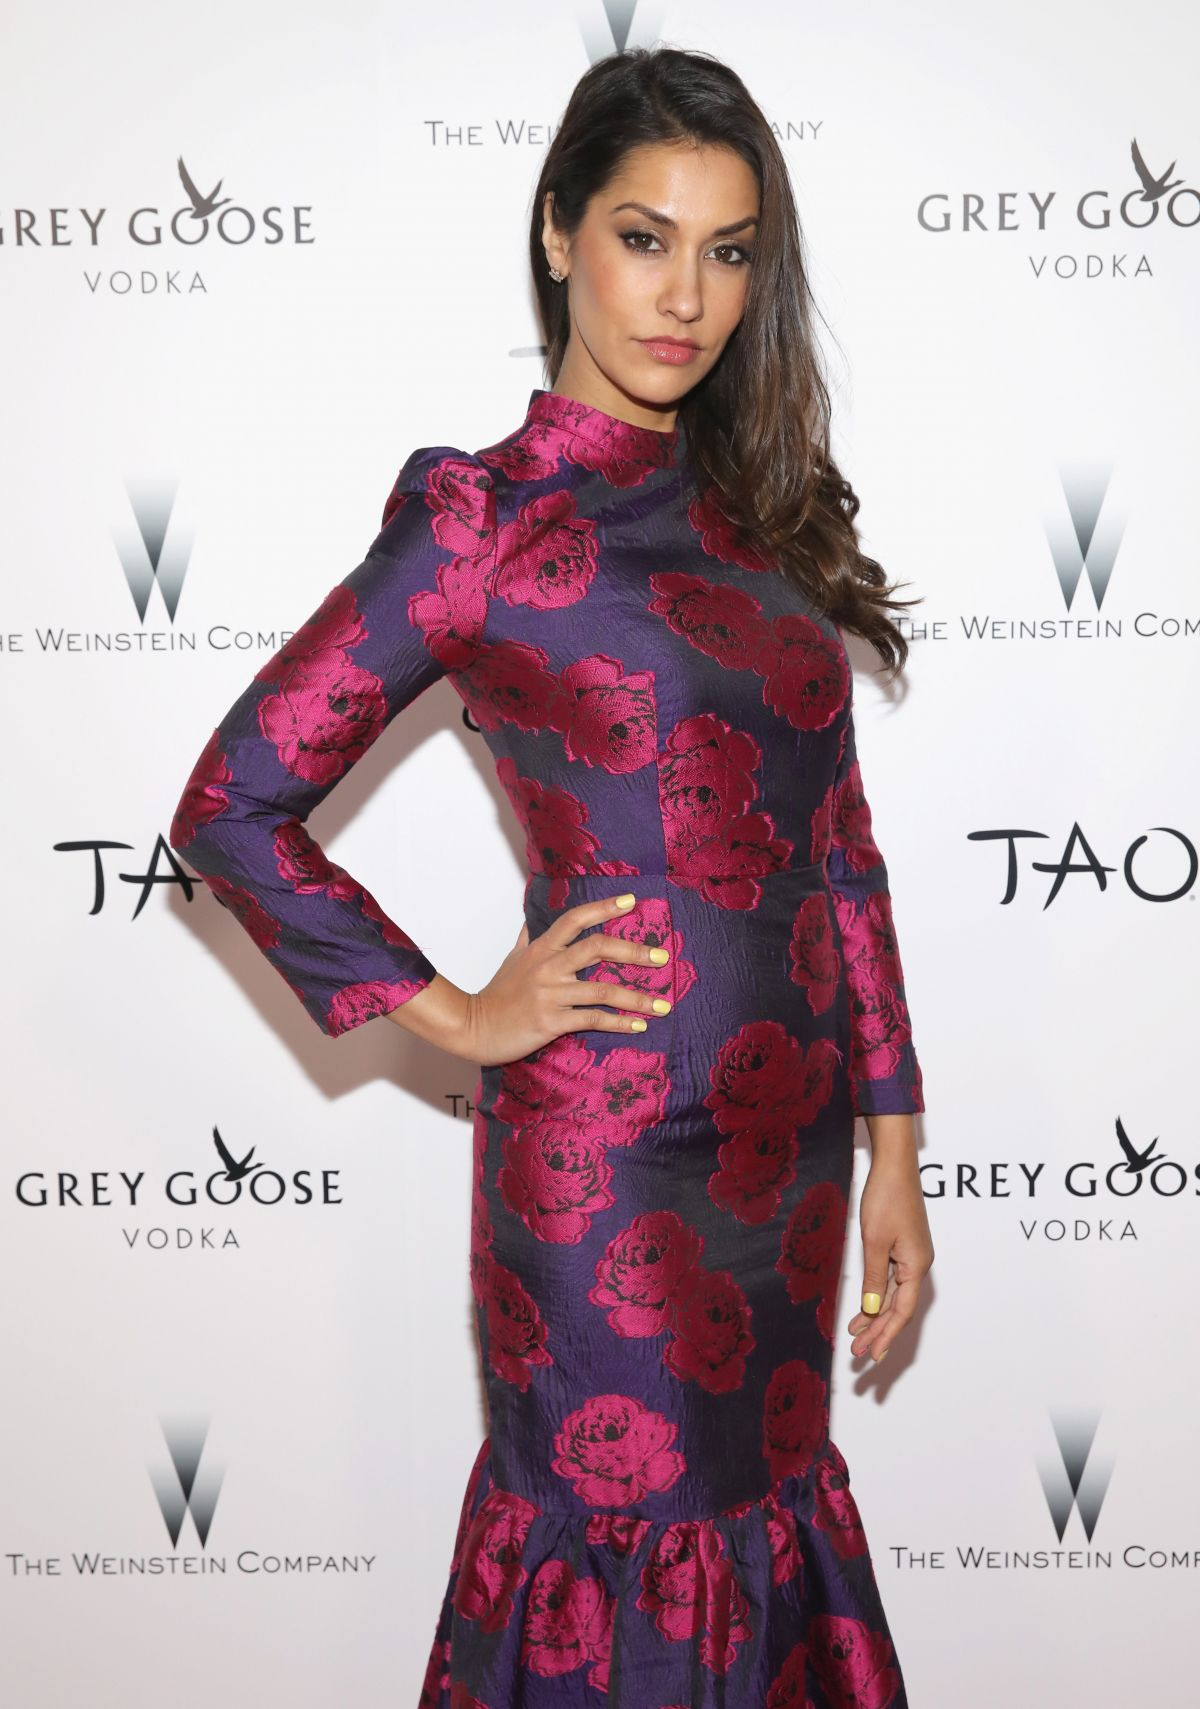 janina gavankar - photo #37